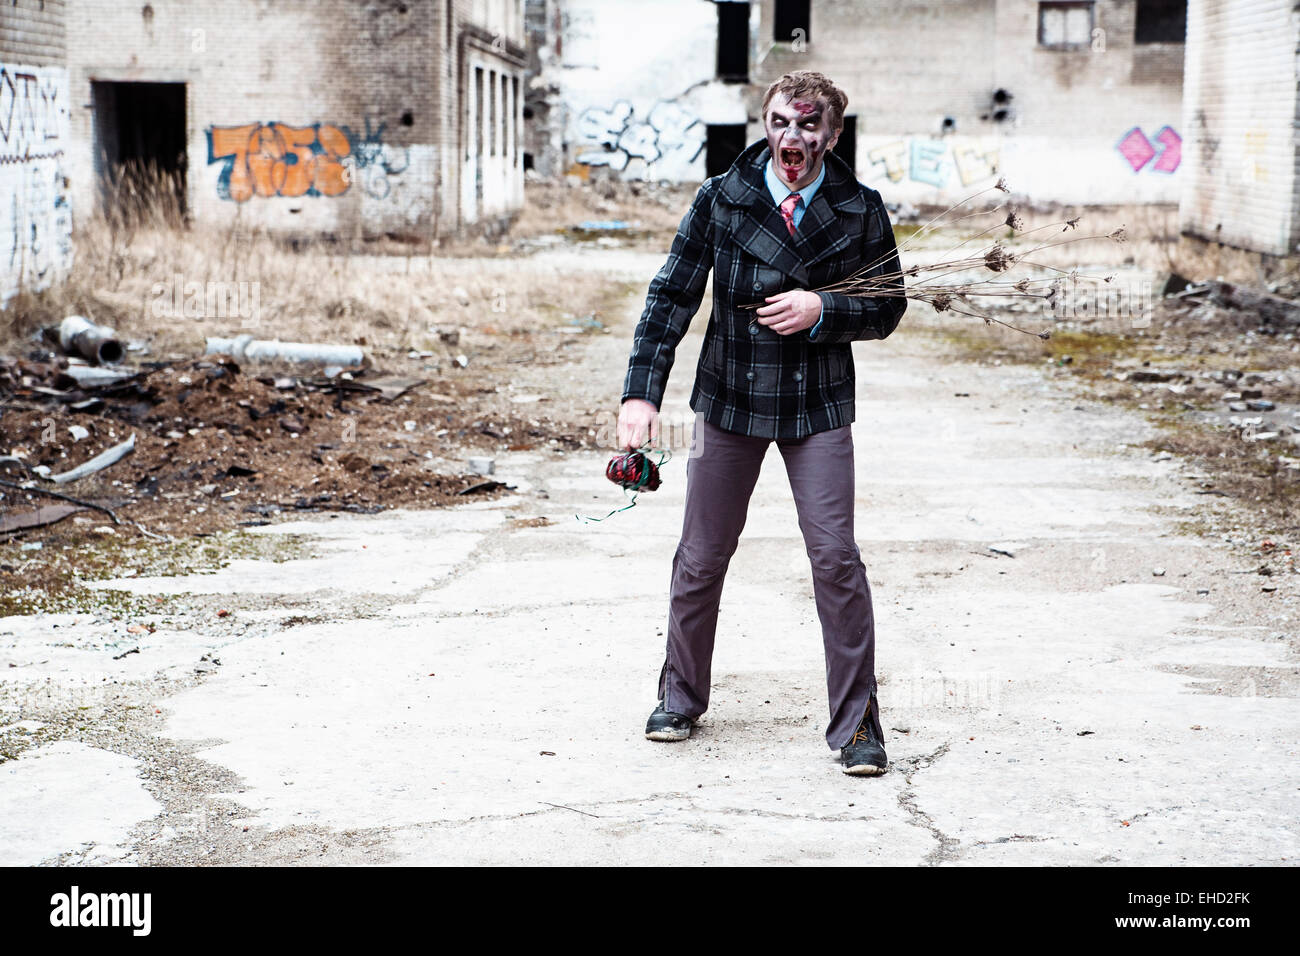 Male with creepy flowers in abandoned place Stock Photo